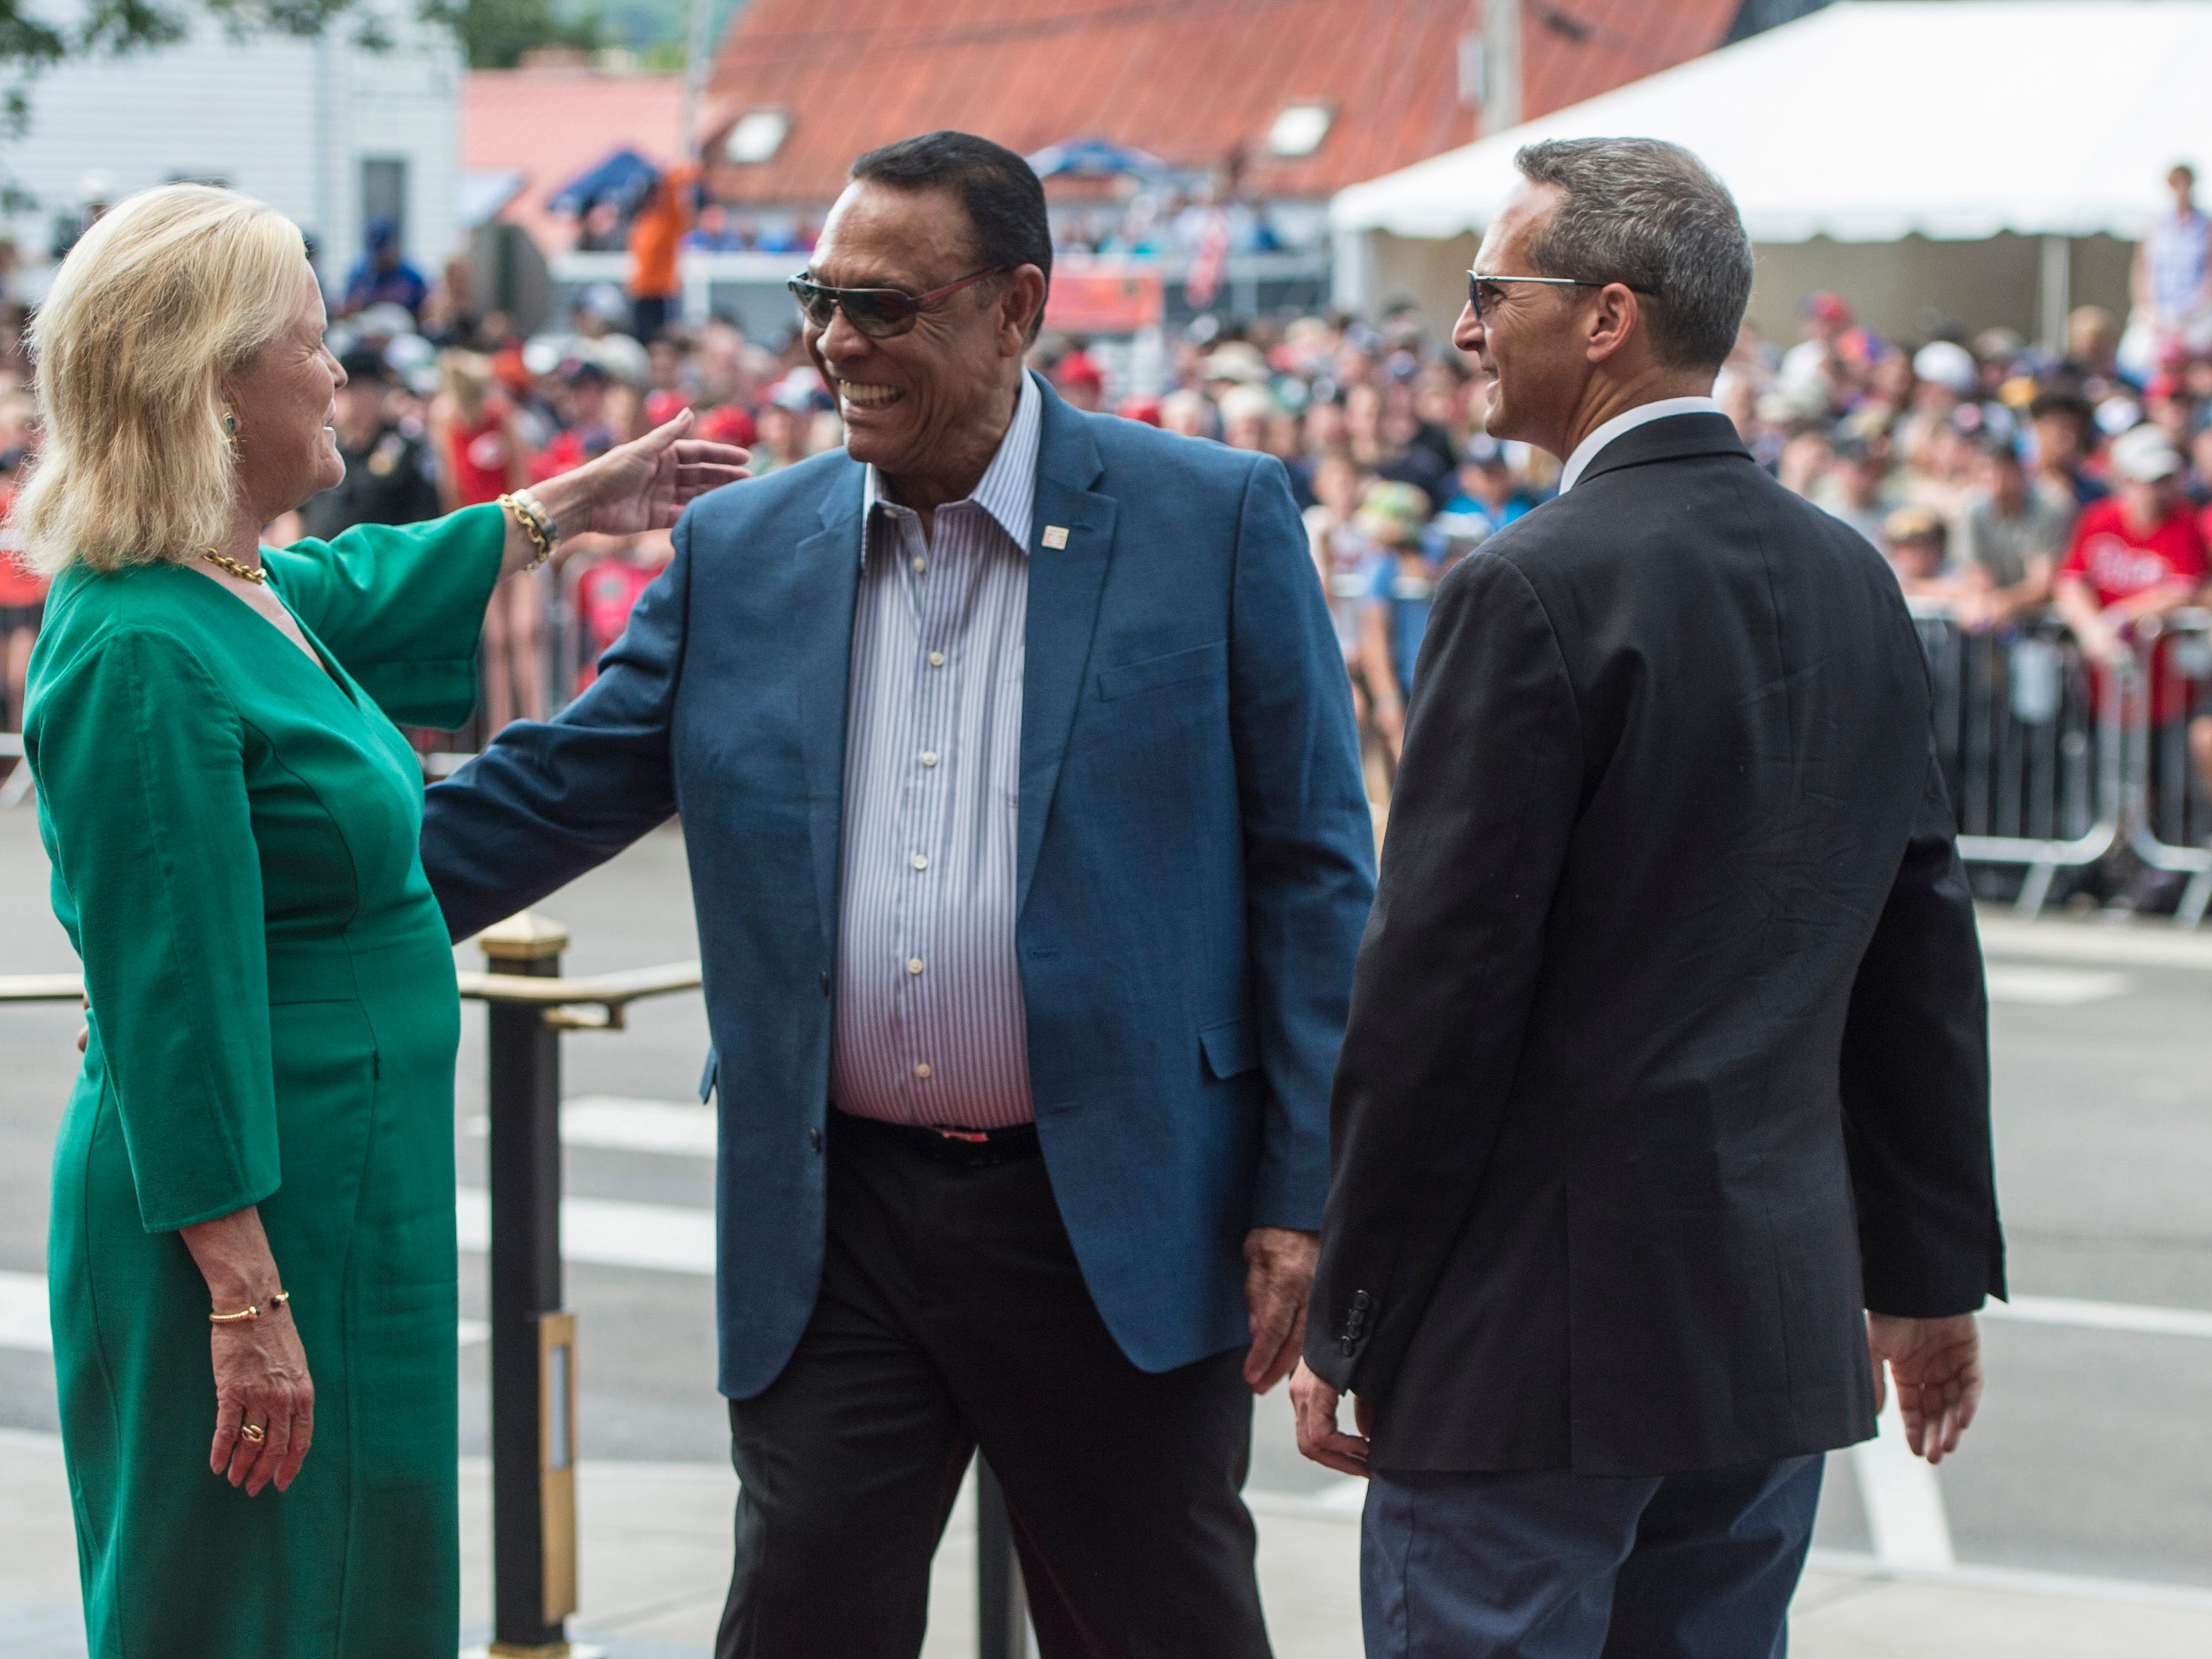 Hall of Fame member Tony Perez (middle) arrives at National Baseball Hall of Fame and is greeted by National baseball Hall of Fame chairman of the board Jane Forbes Clark (left) and Hall of Fame President Jeff Idelson.